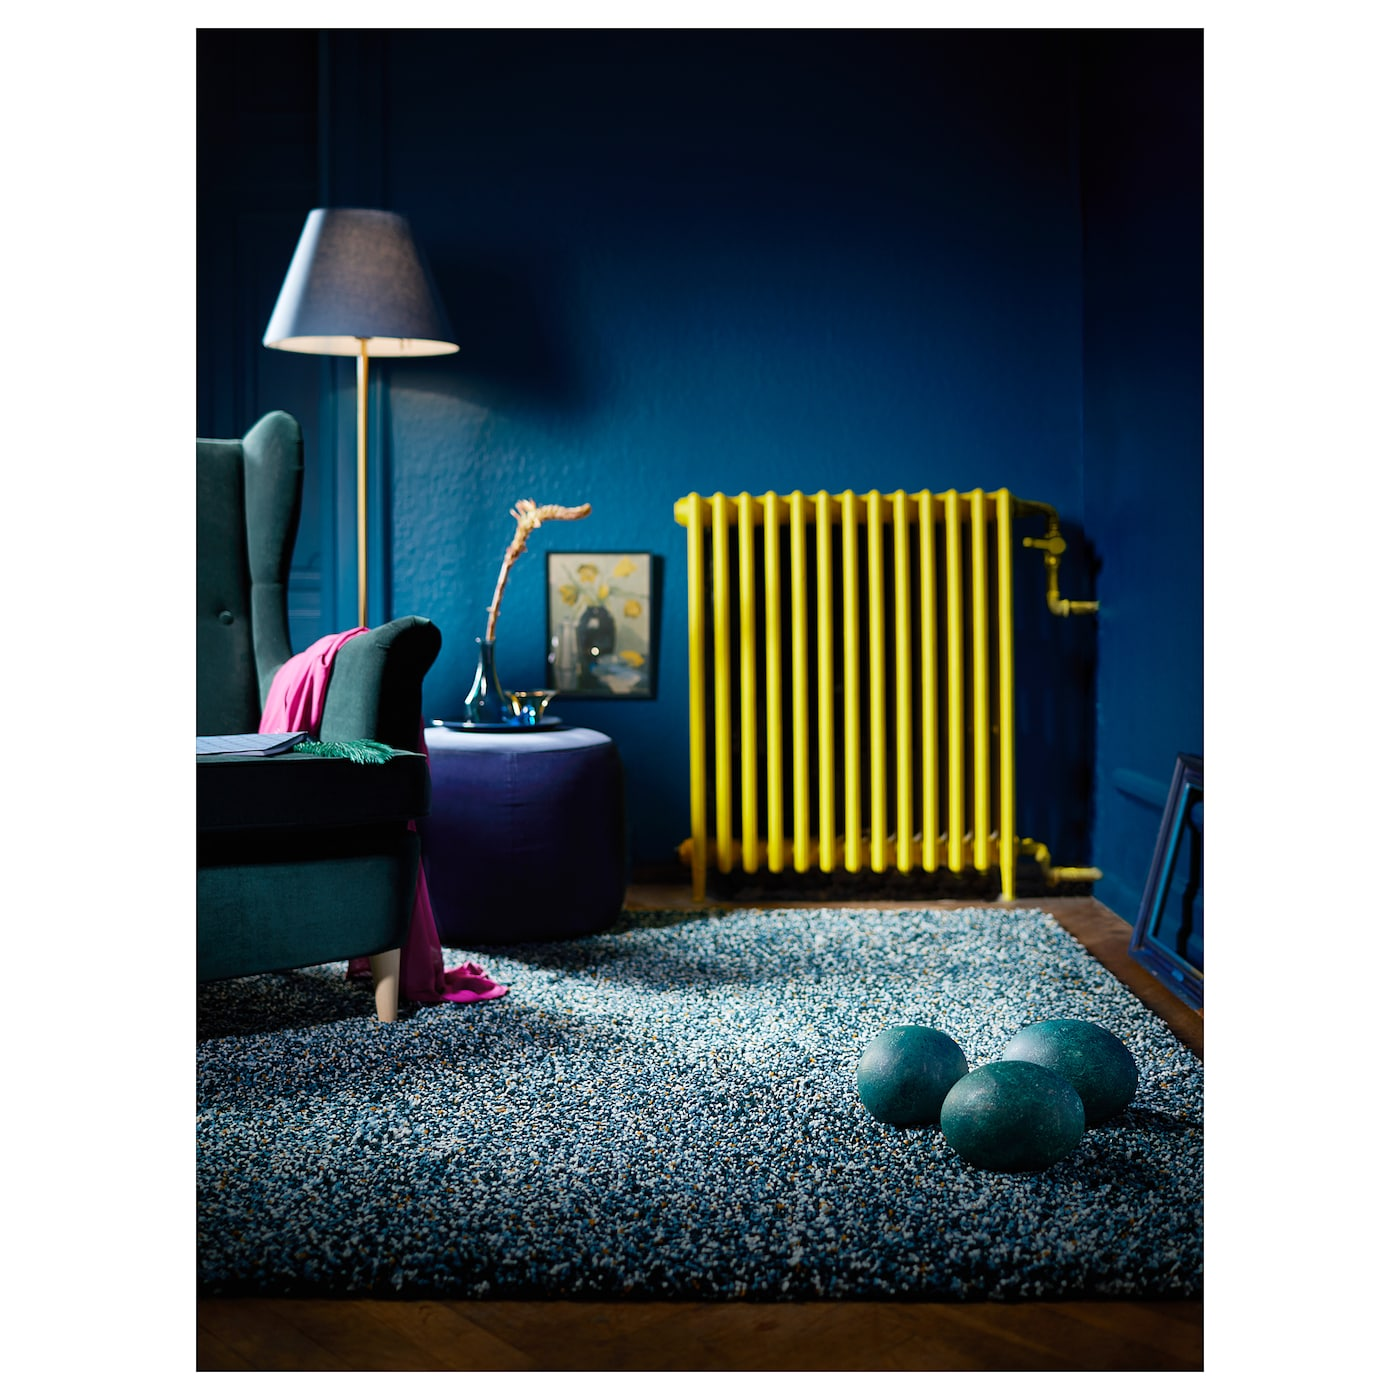 vindum tapis poils hauts bleu vert 170x230 cm ikea. Black Bedroom Furniture Sets. Home Design Ideas